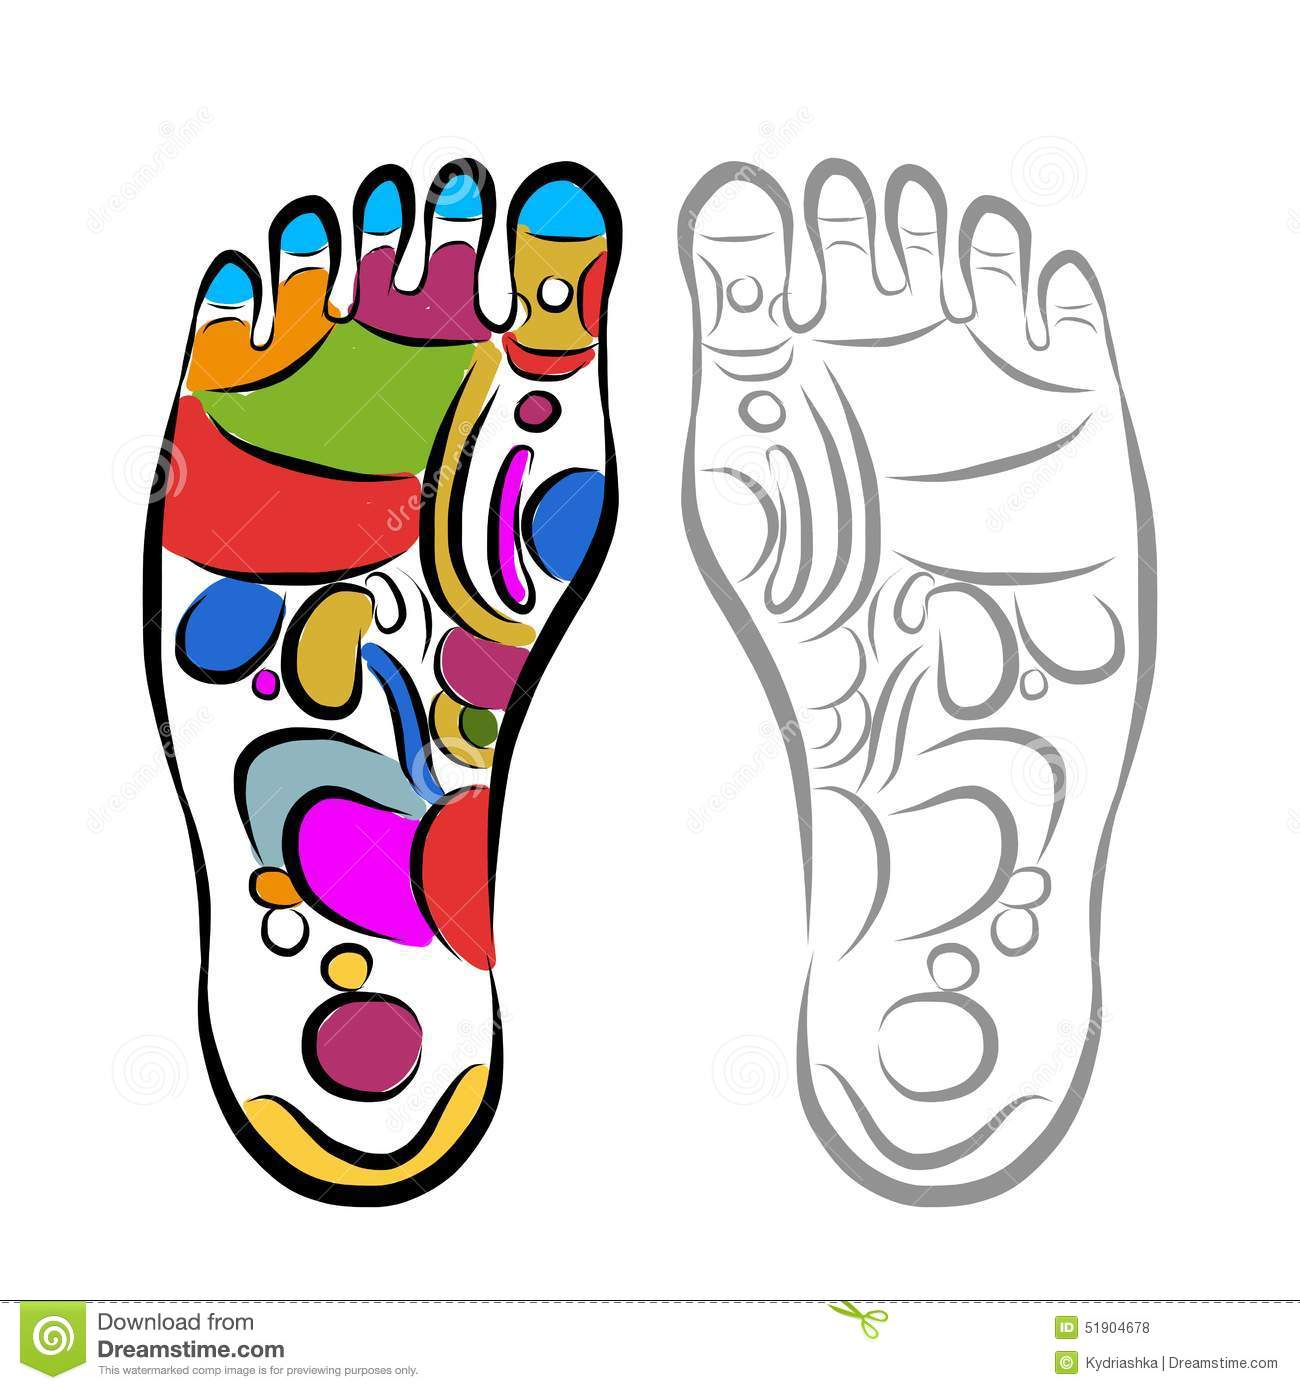 What Do I Need to Start a Reflexology Business?